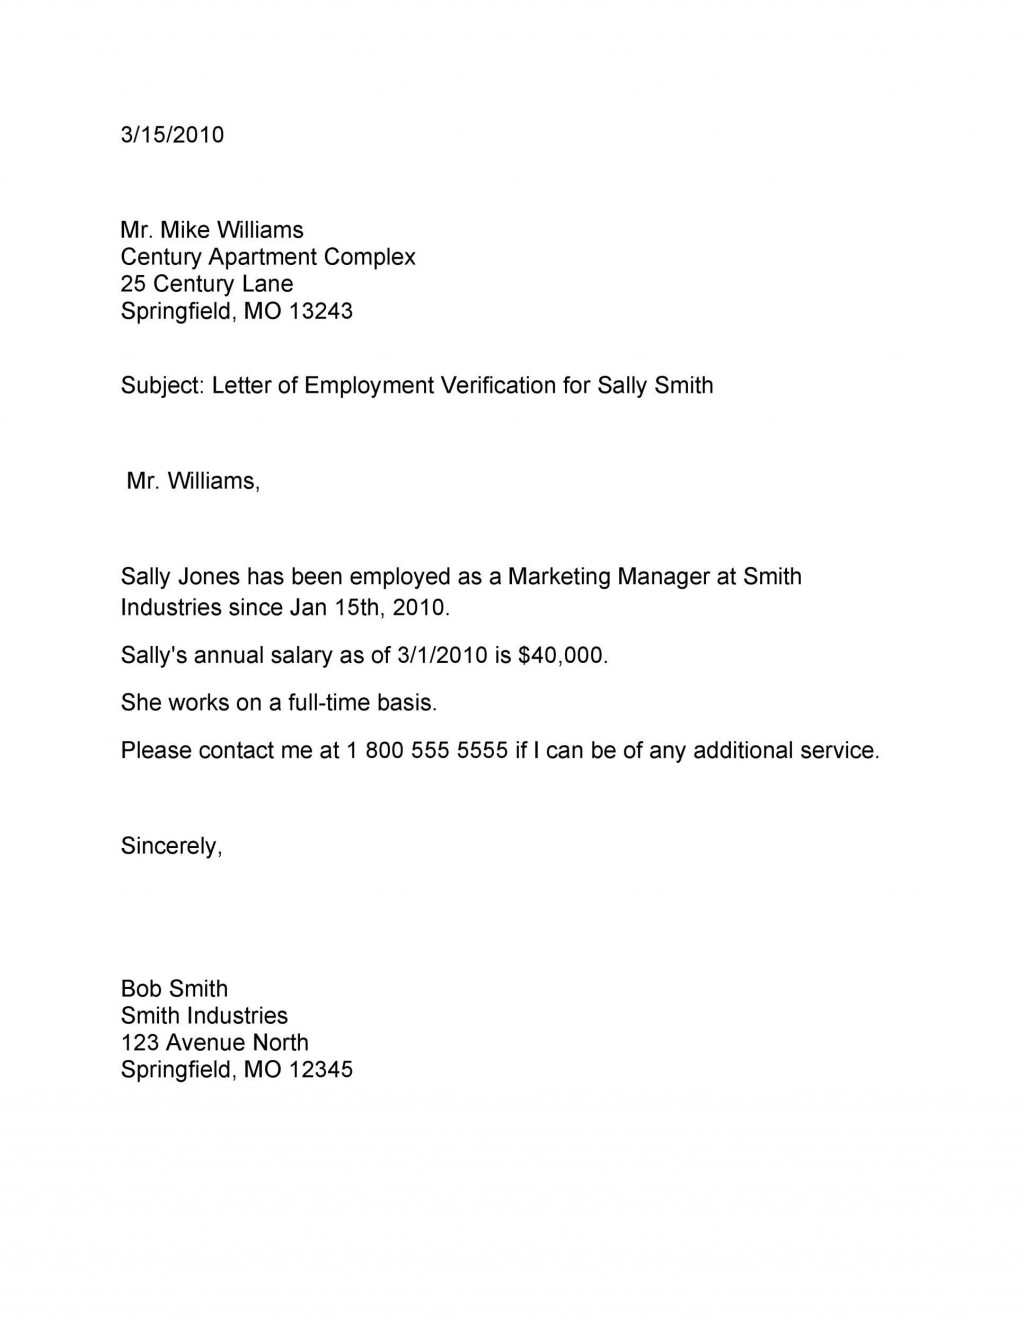 005 Stirring Letter Of Employment Template Highest Clarity  Confirmation Canada For MortgageLarge